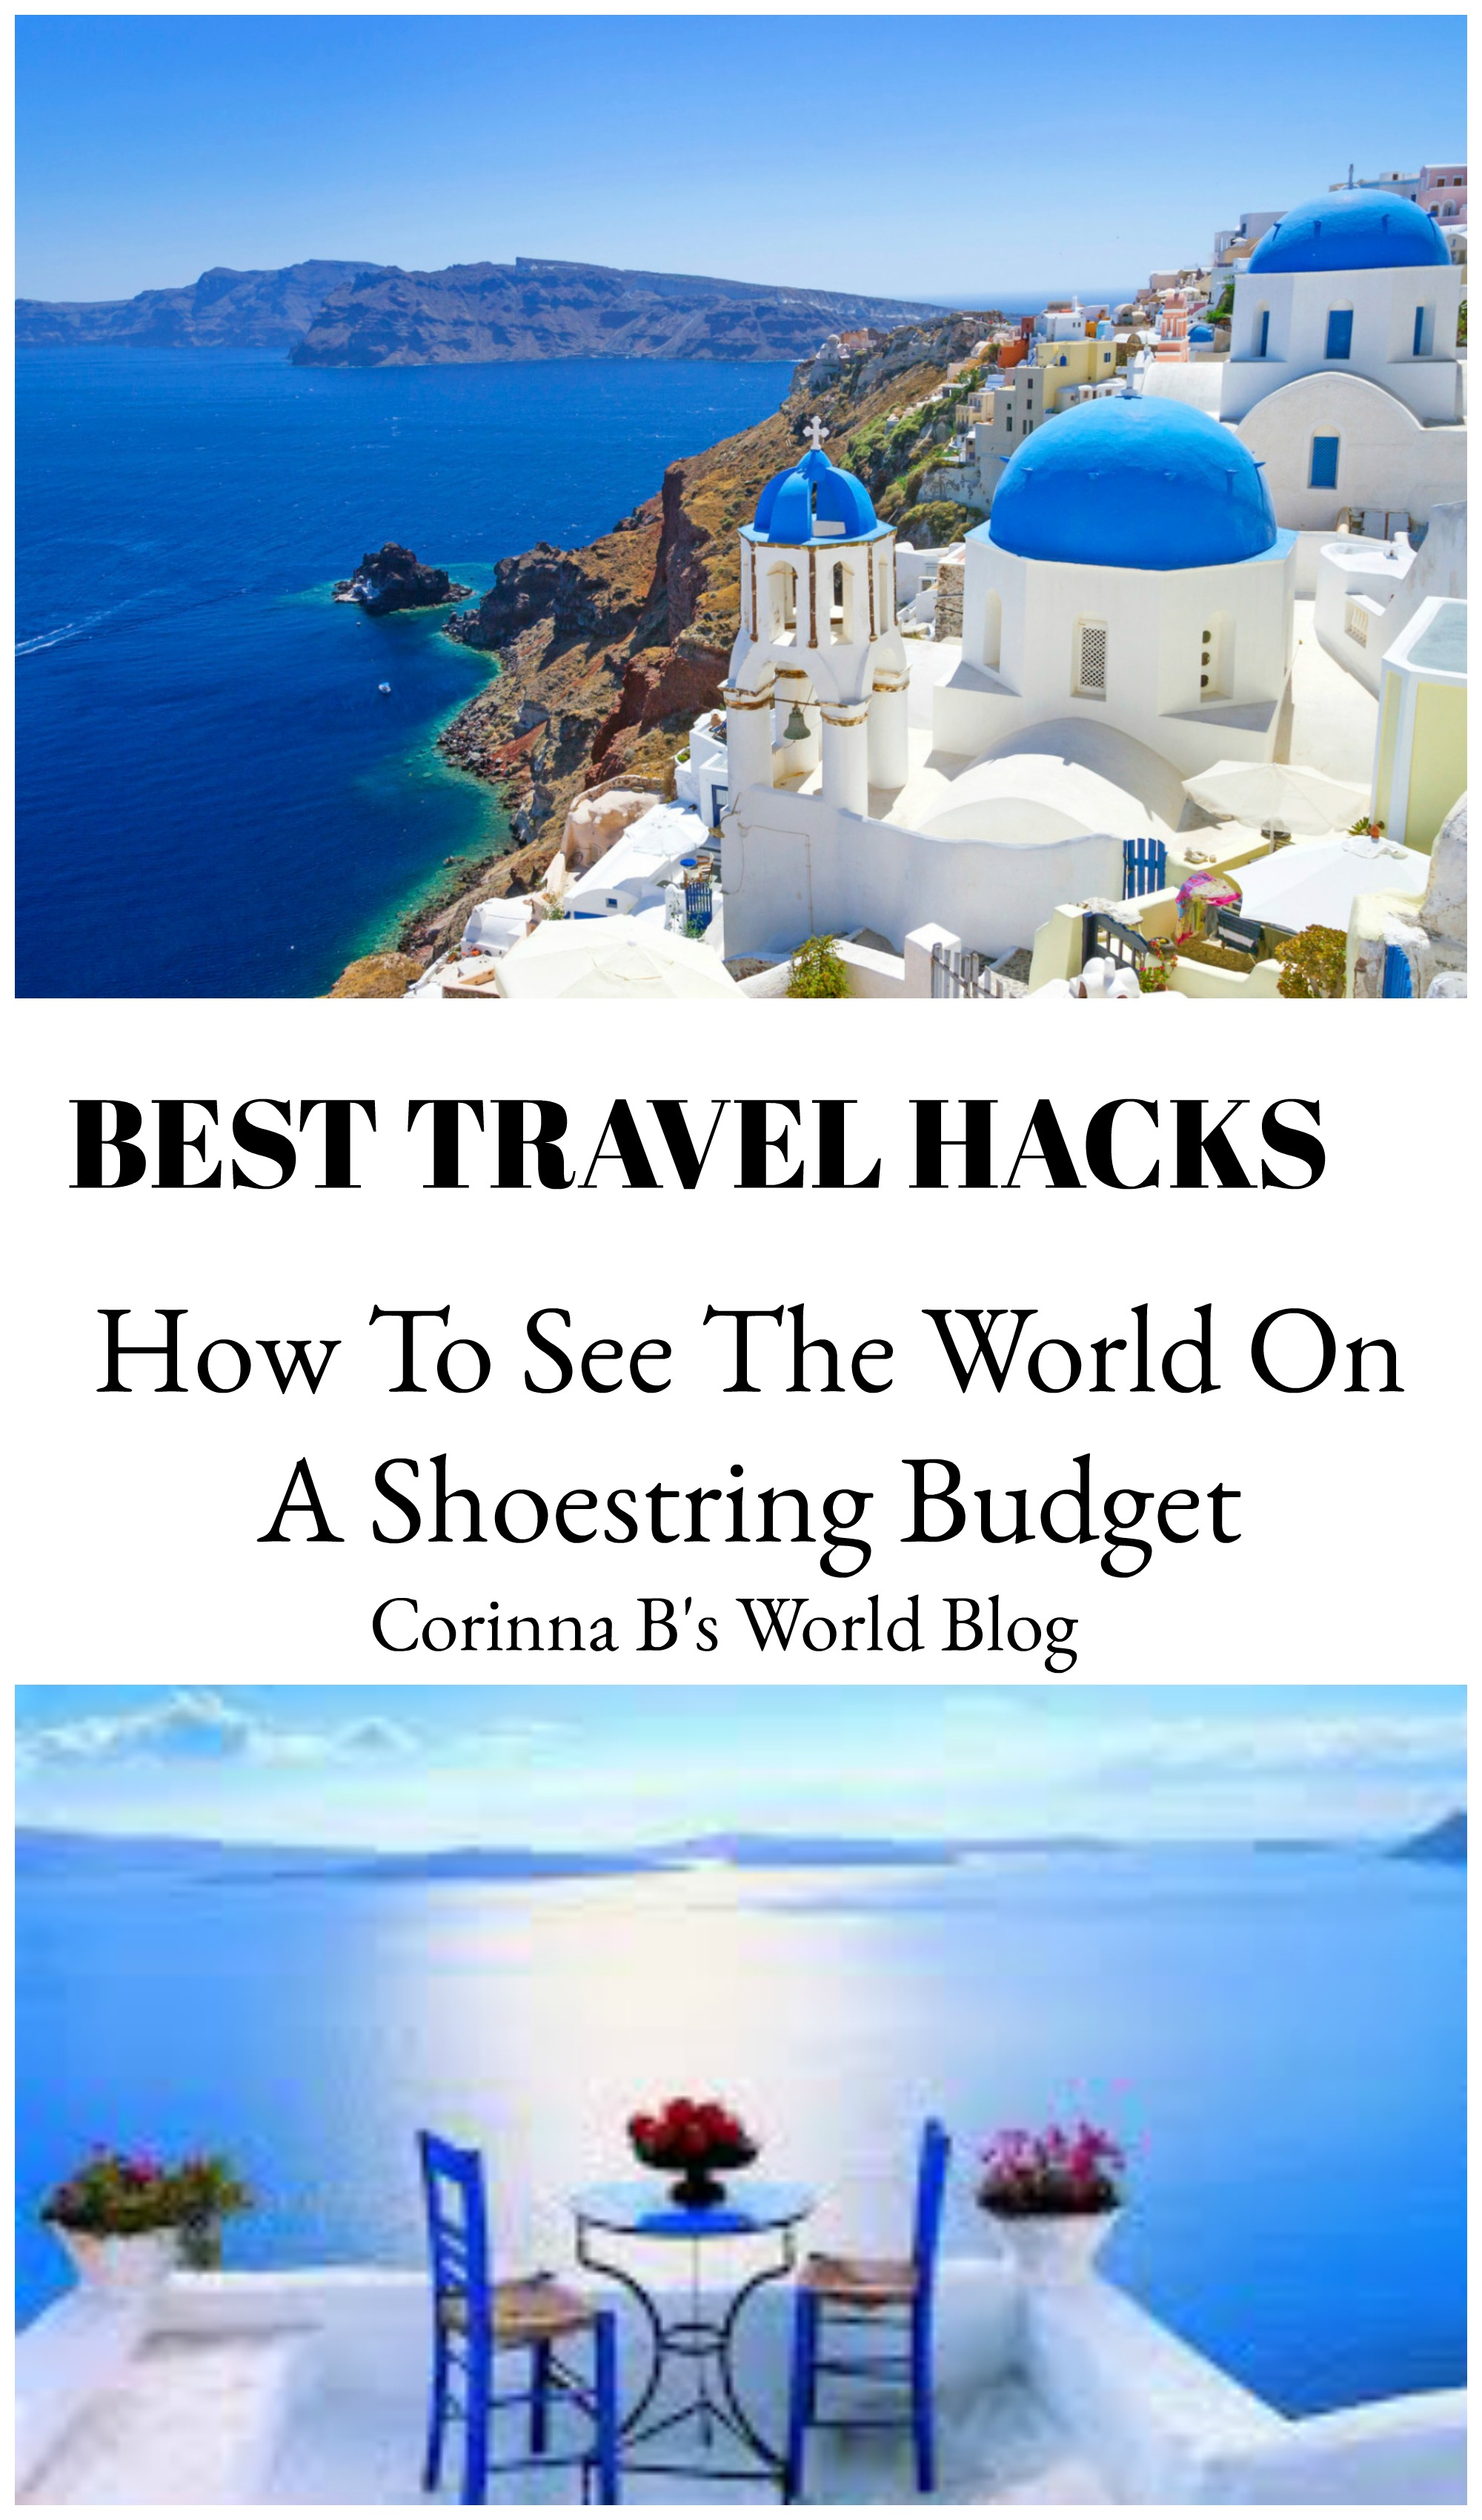 7 Great Travel Hacks How To Travel The World On A